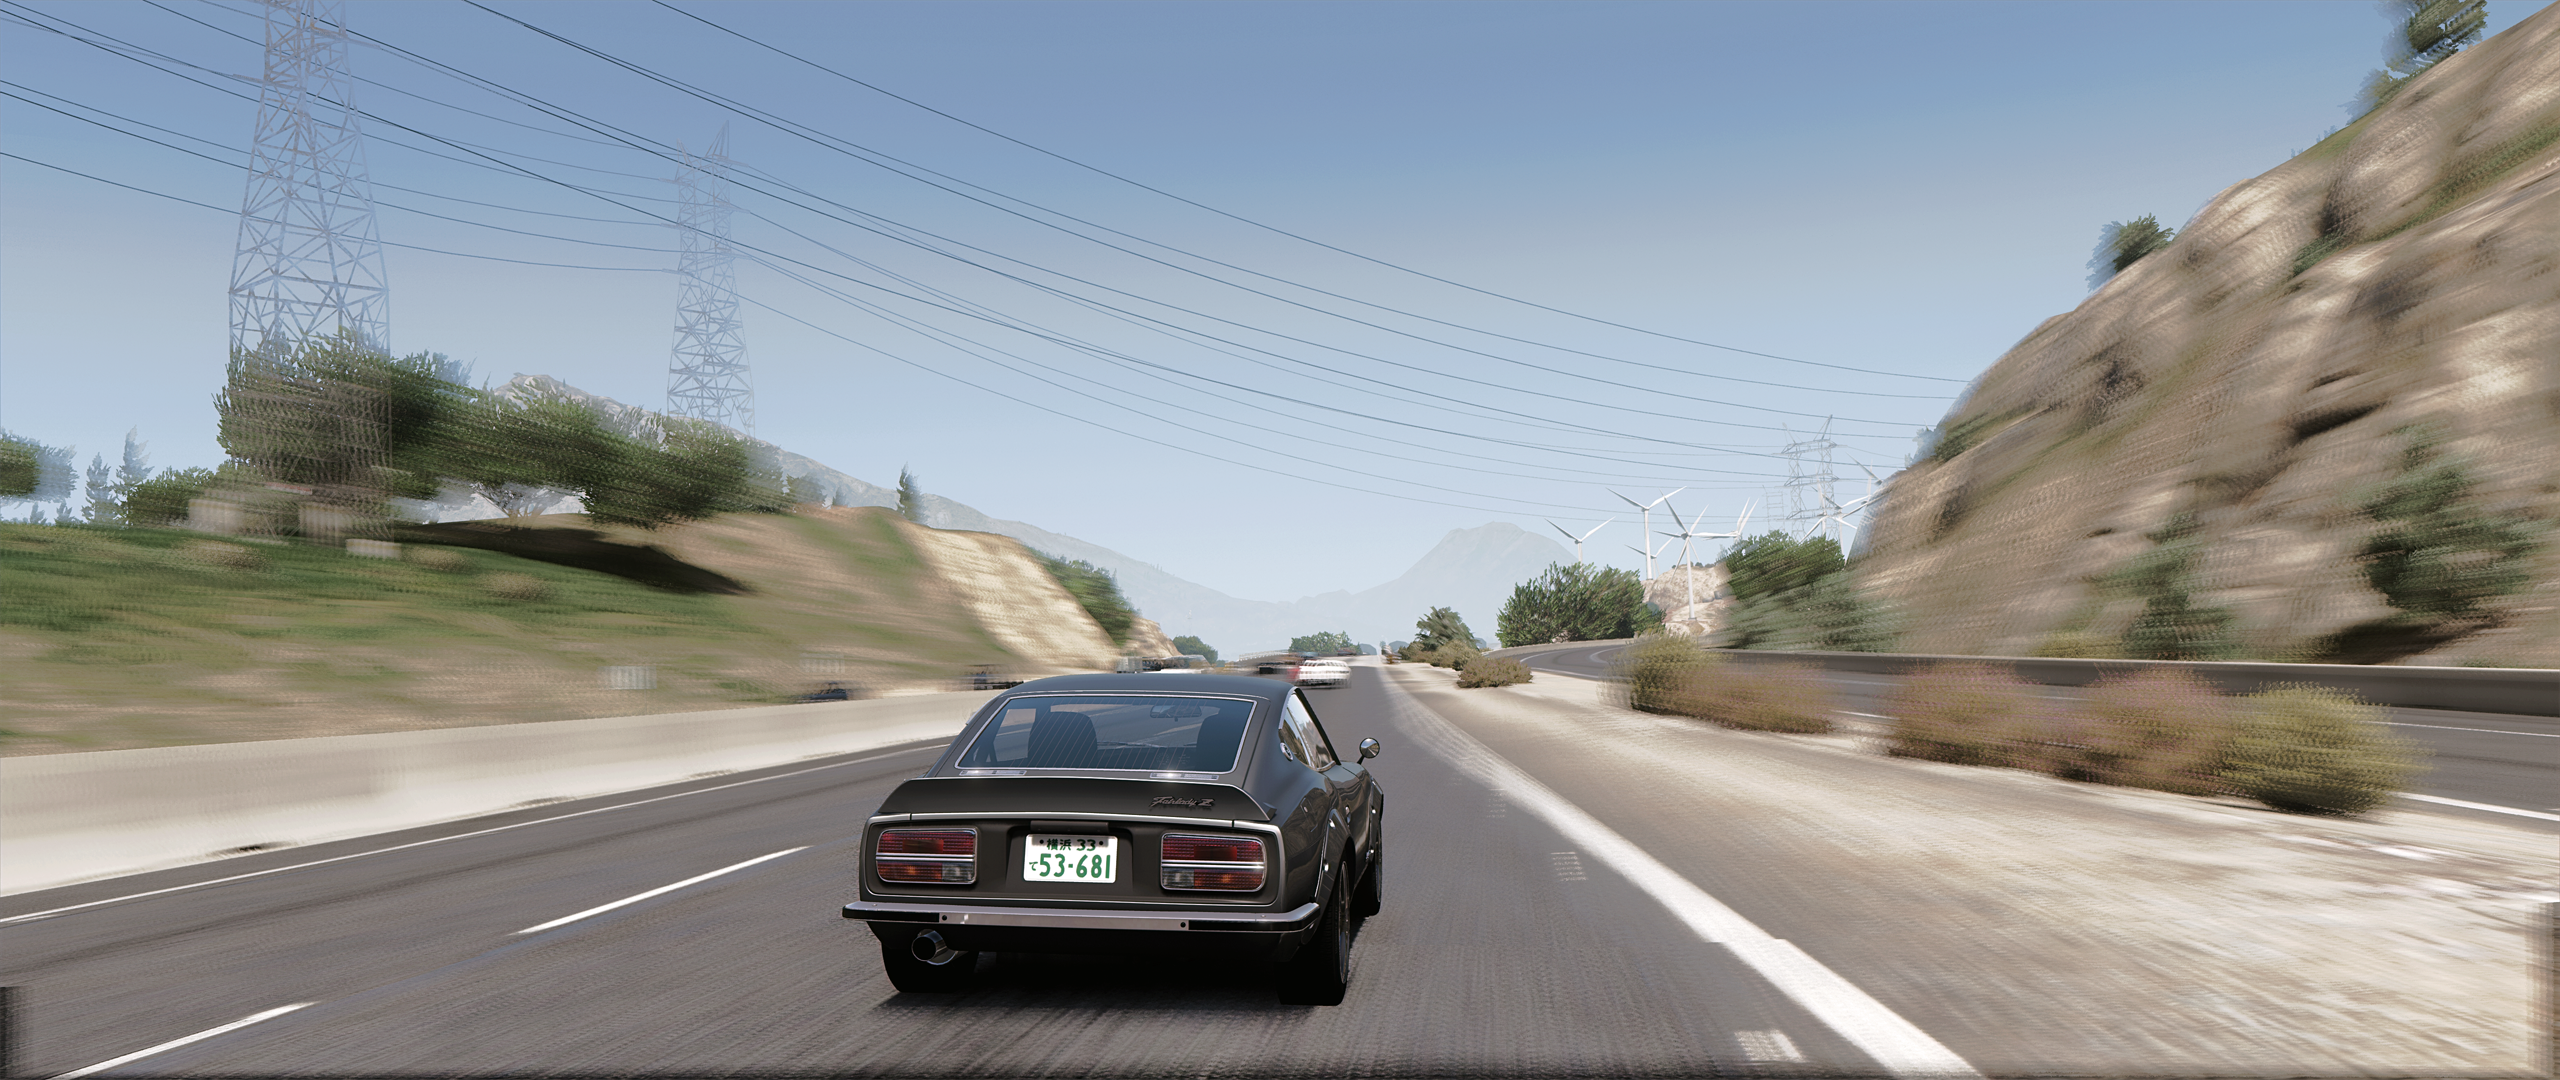 Pictures of Take a look at this impressive GTA V graphics